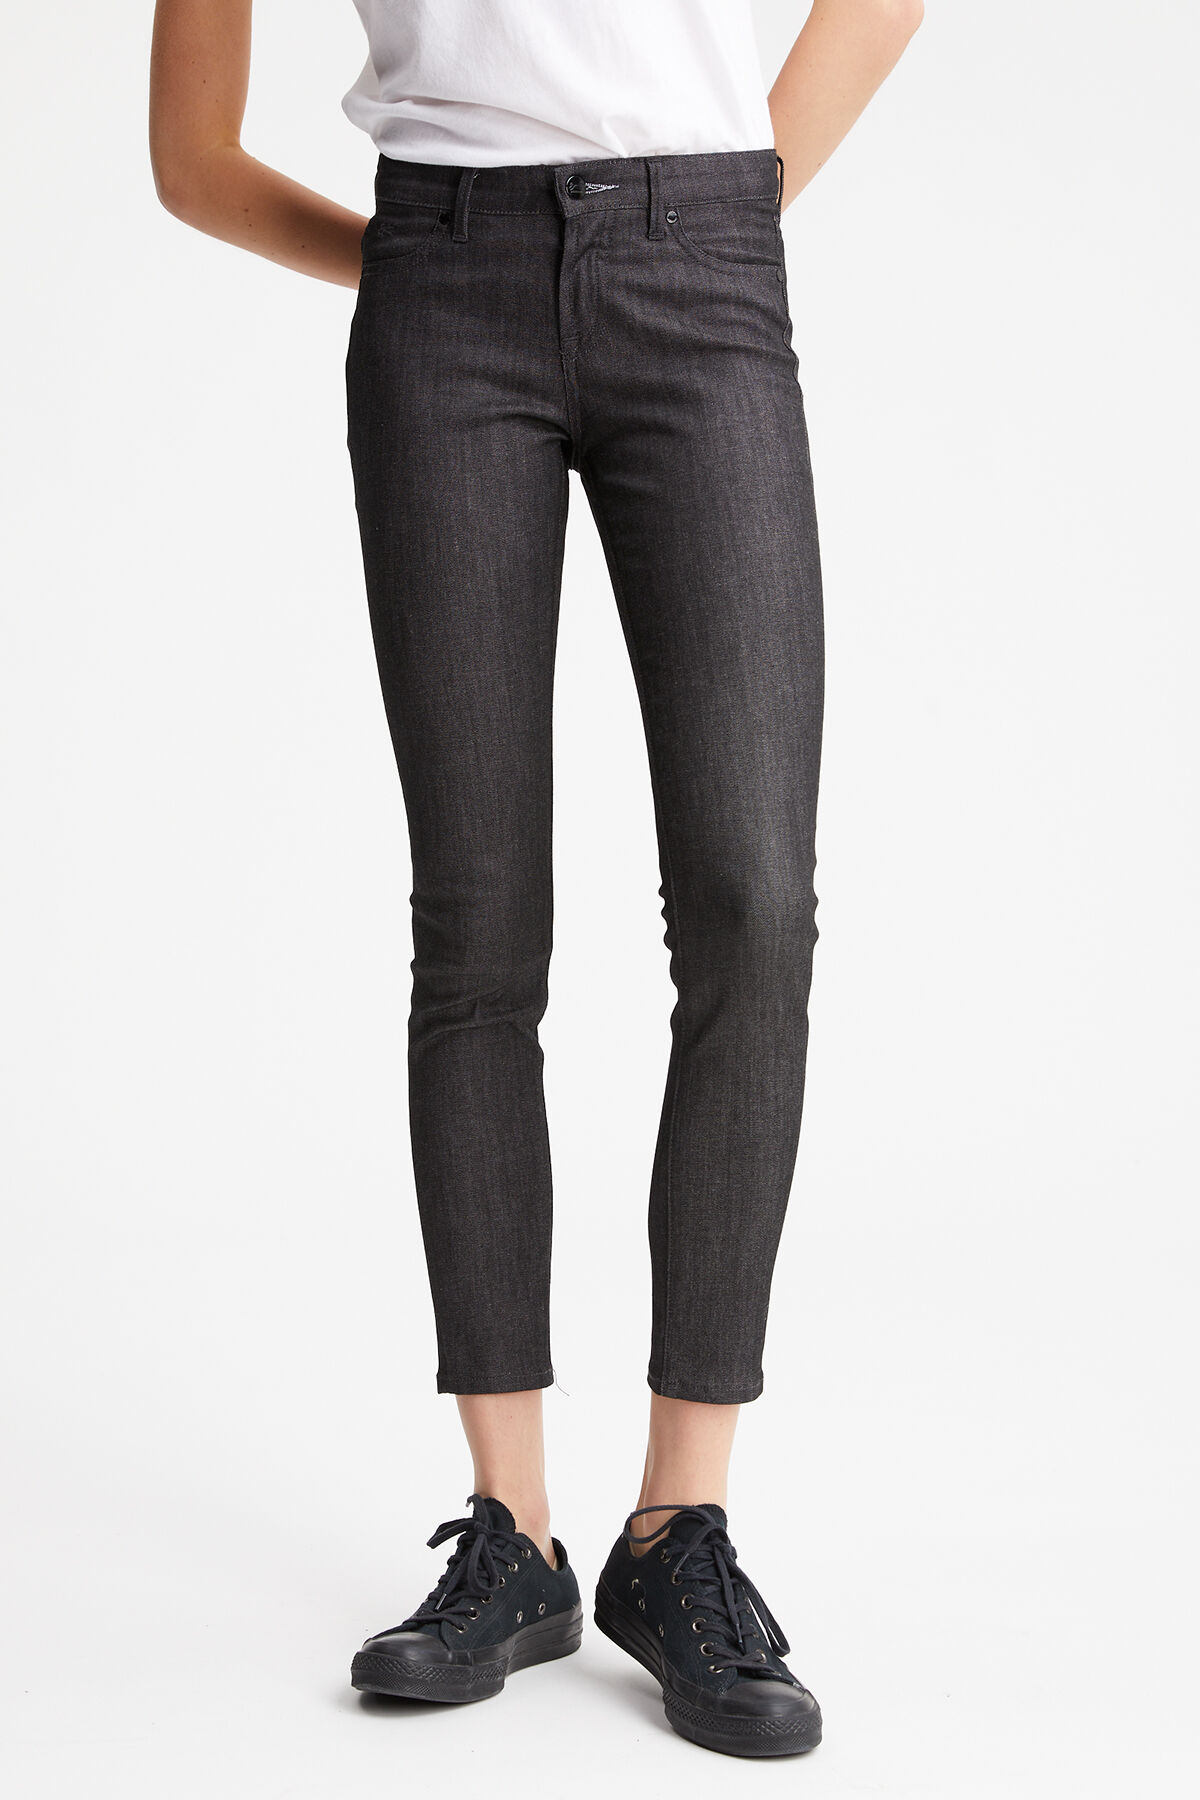 SPRAY Authentic Black Denim - MID-RISE, TIGHT FIT